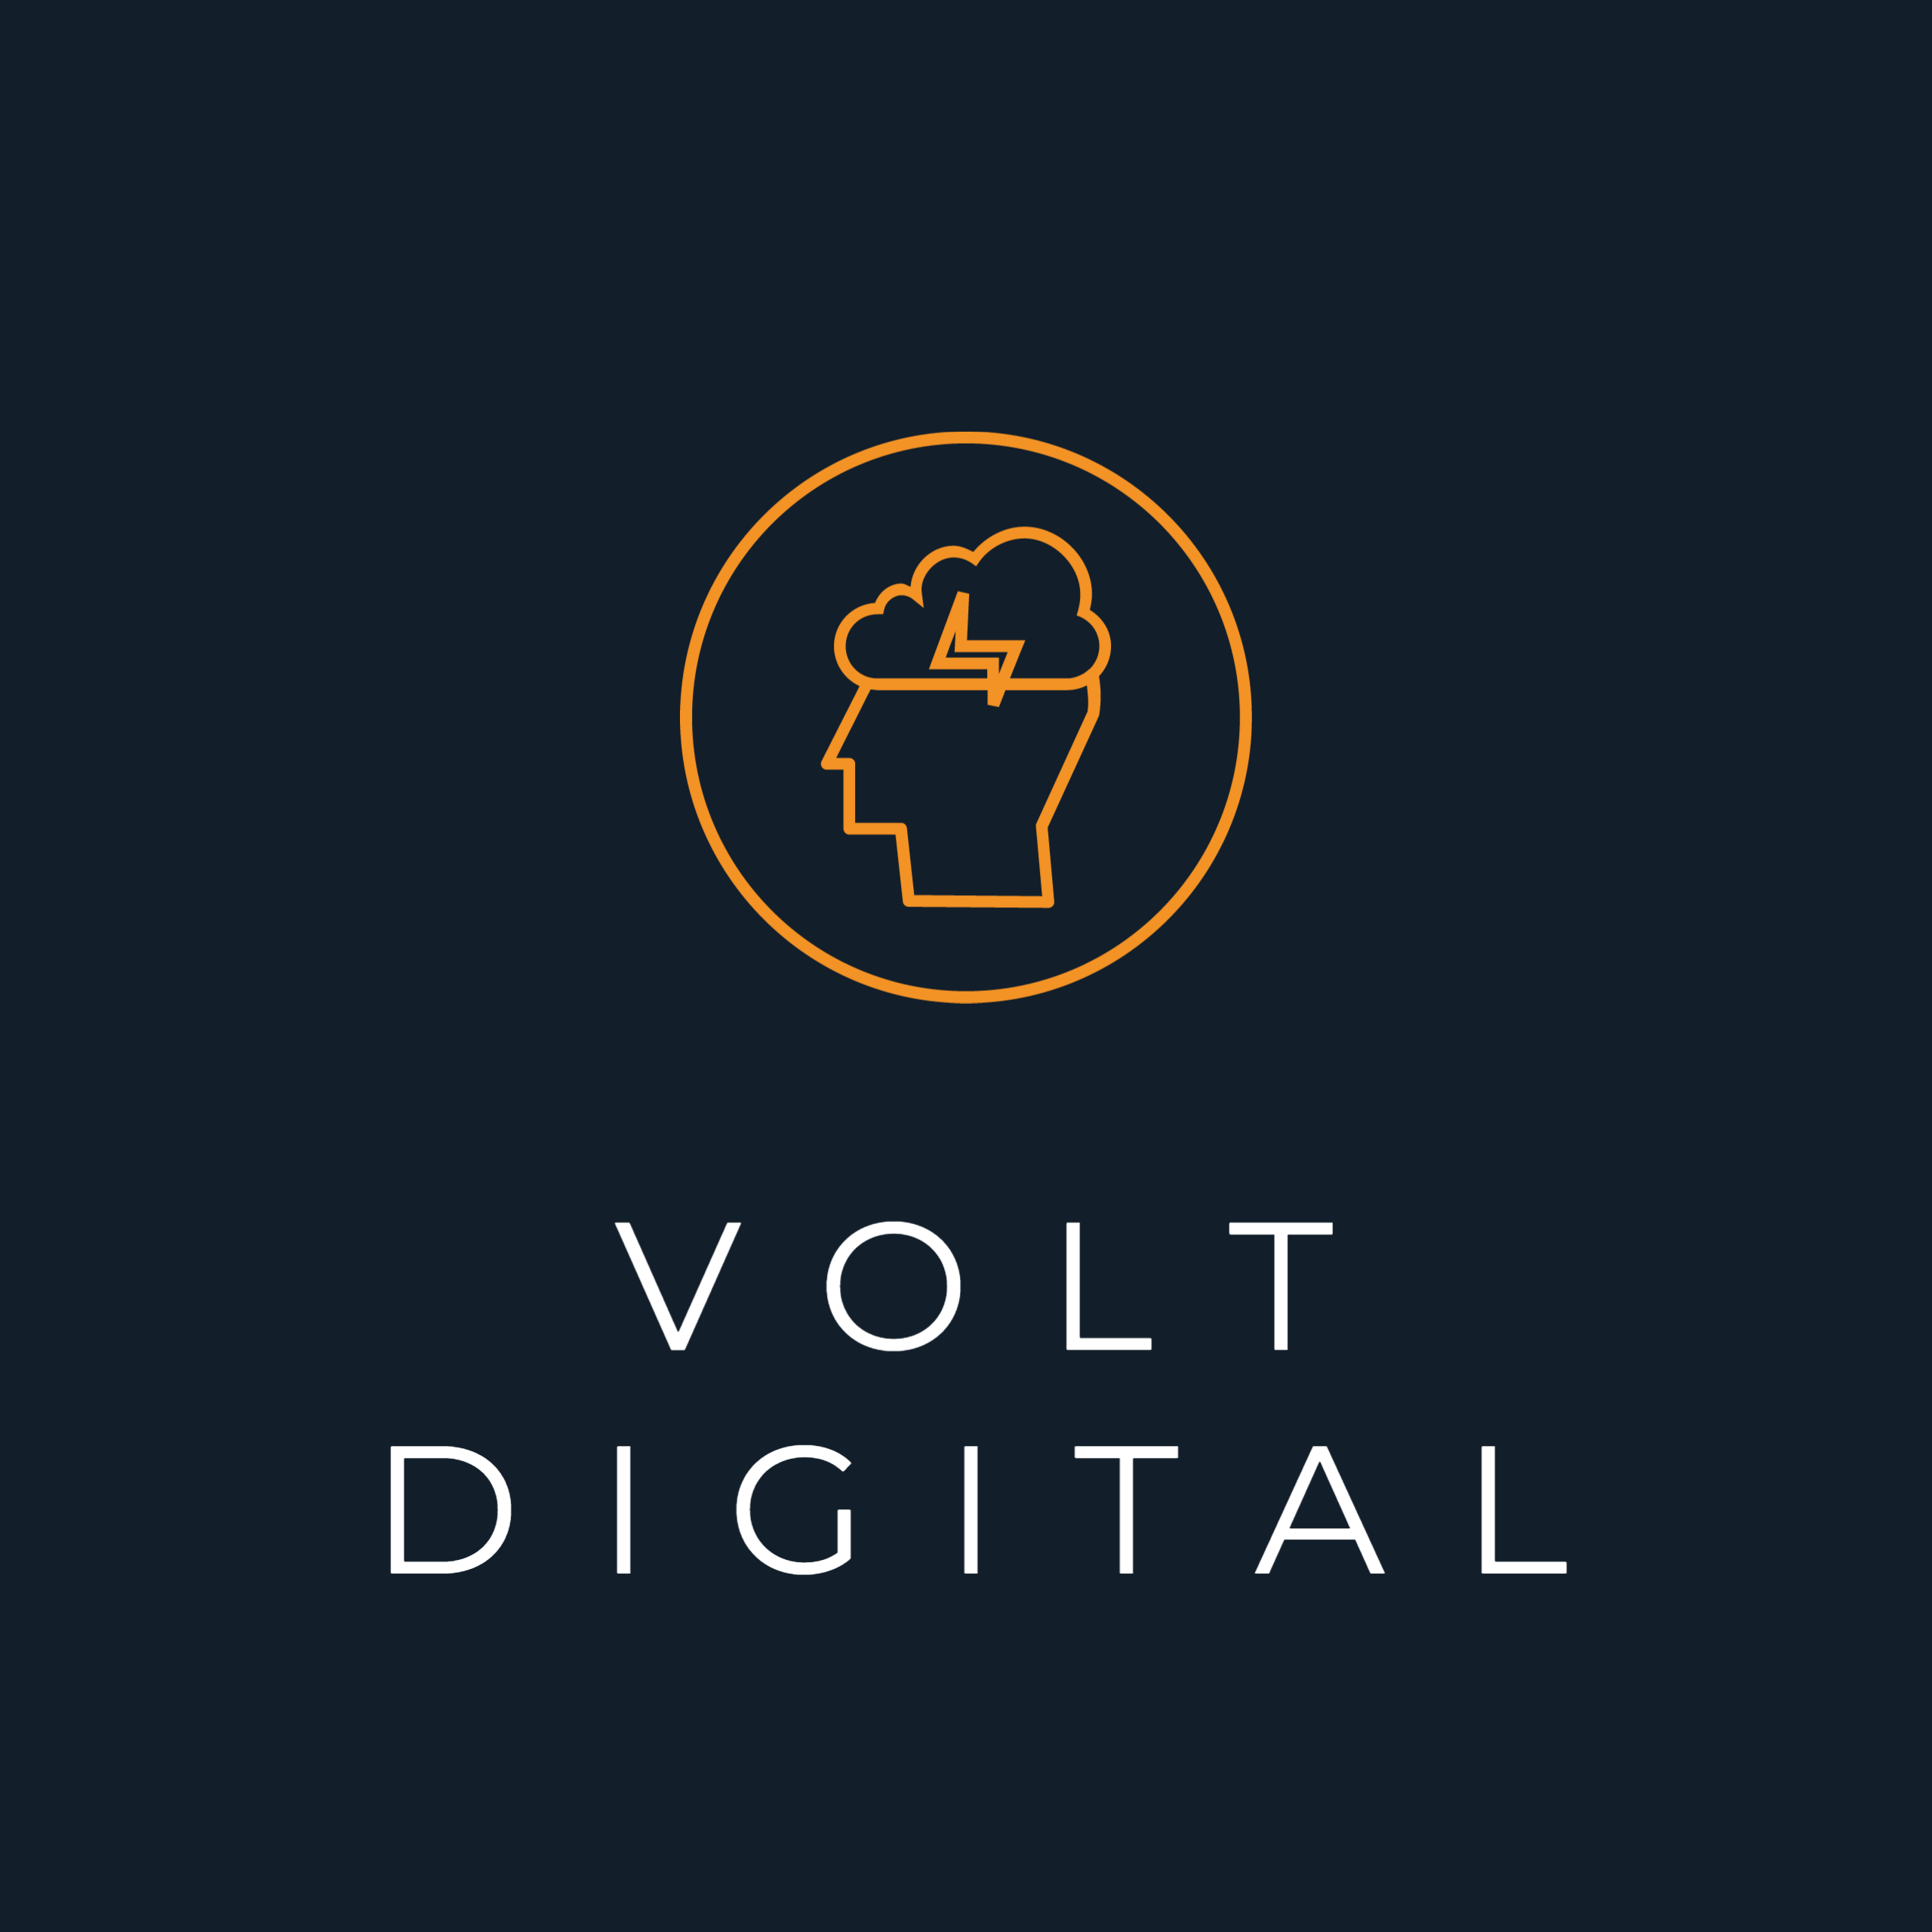 Volt Digital